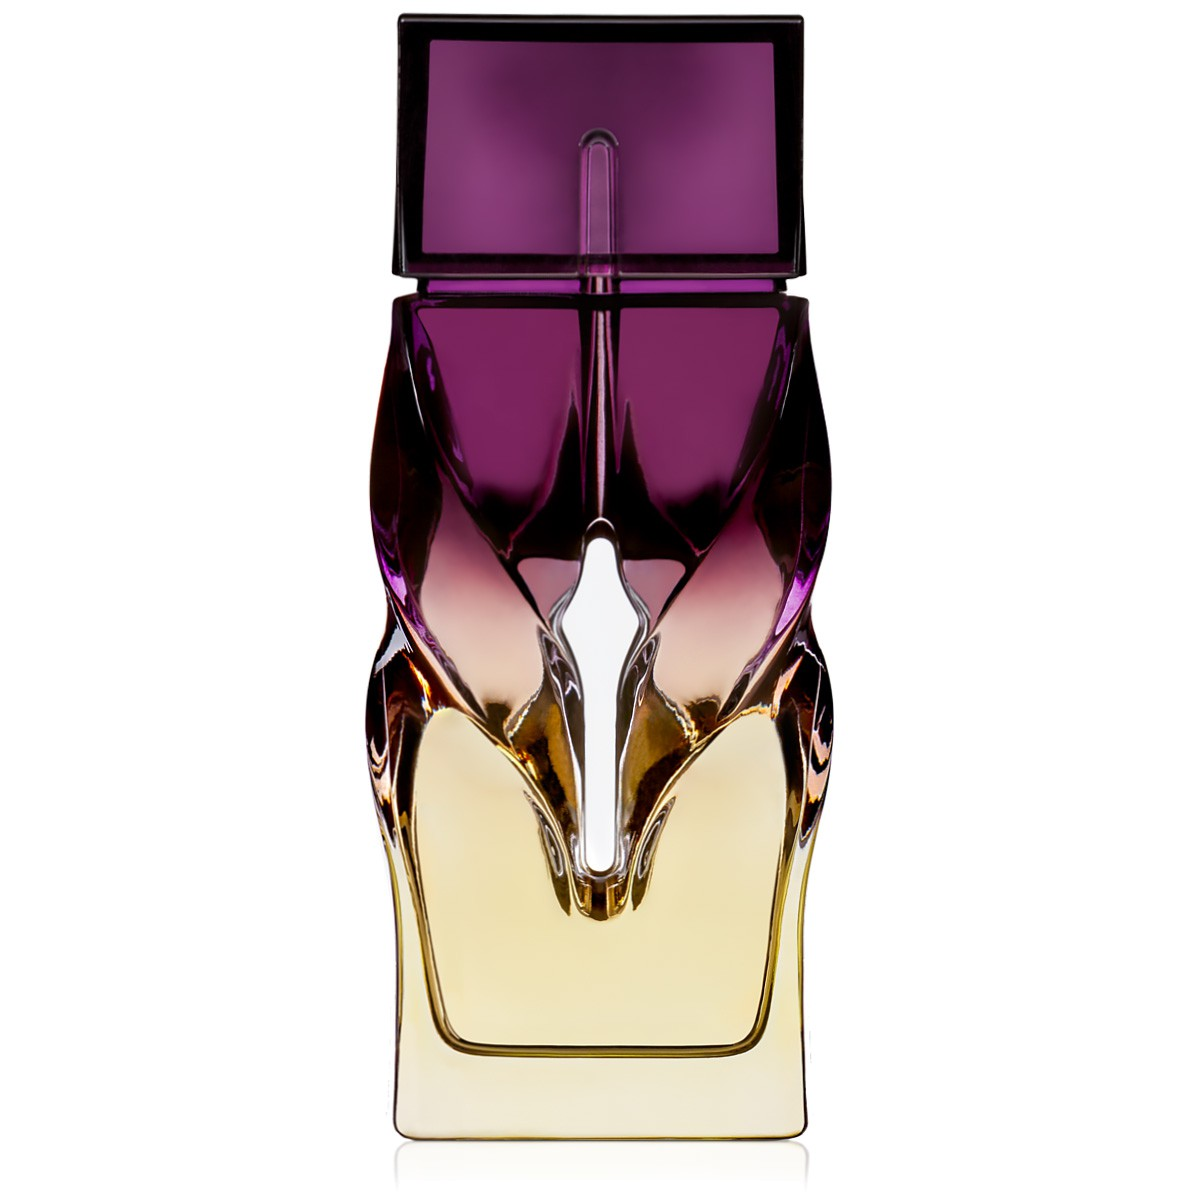 Beauté - Trouble In Heaven - Christian Louboutin